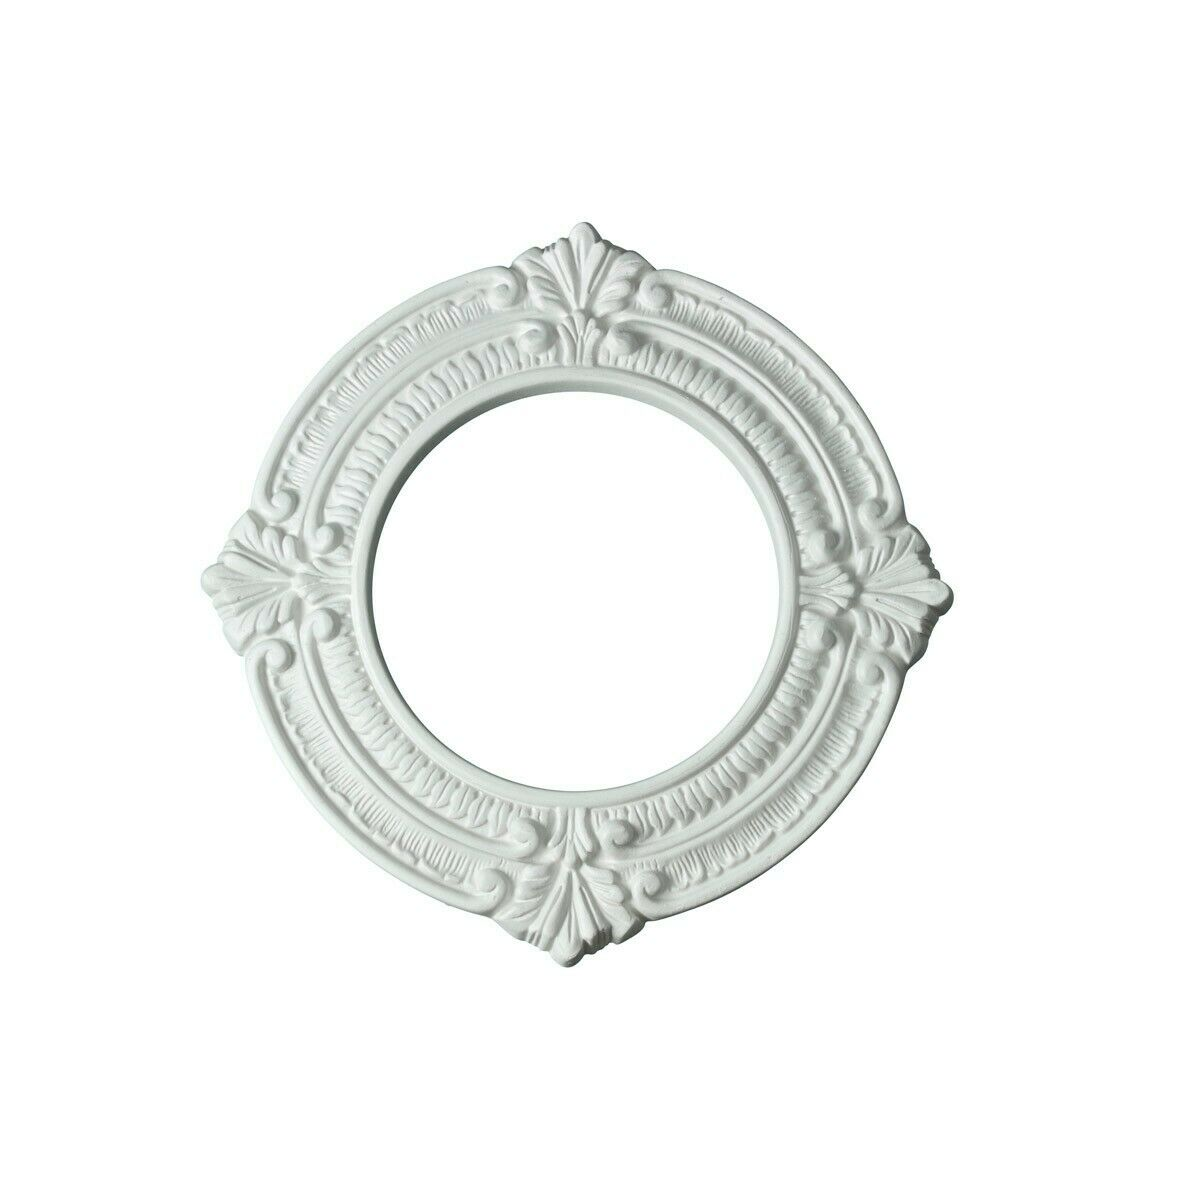 Order goods in our shop Spot Light Trim Medallions 6 ID